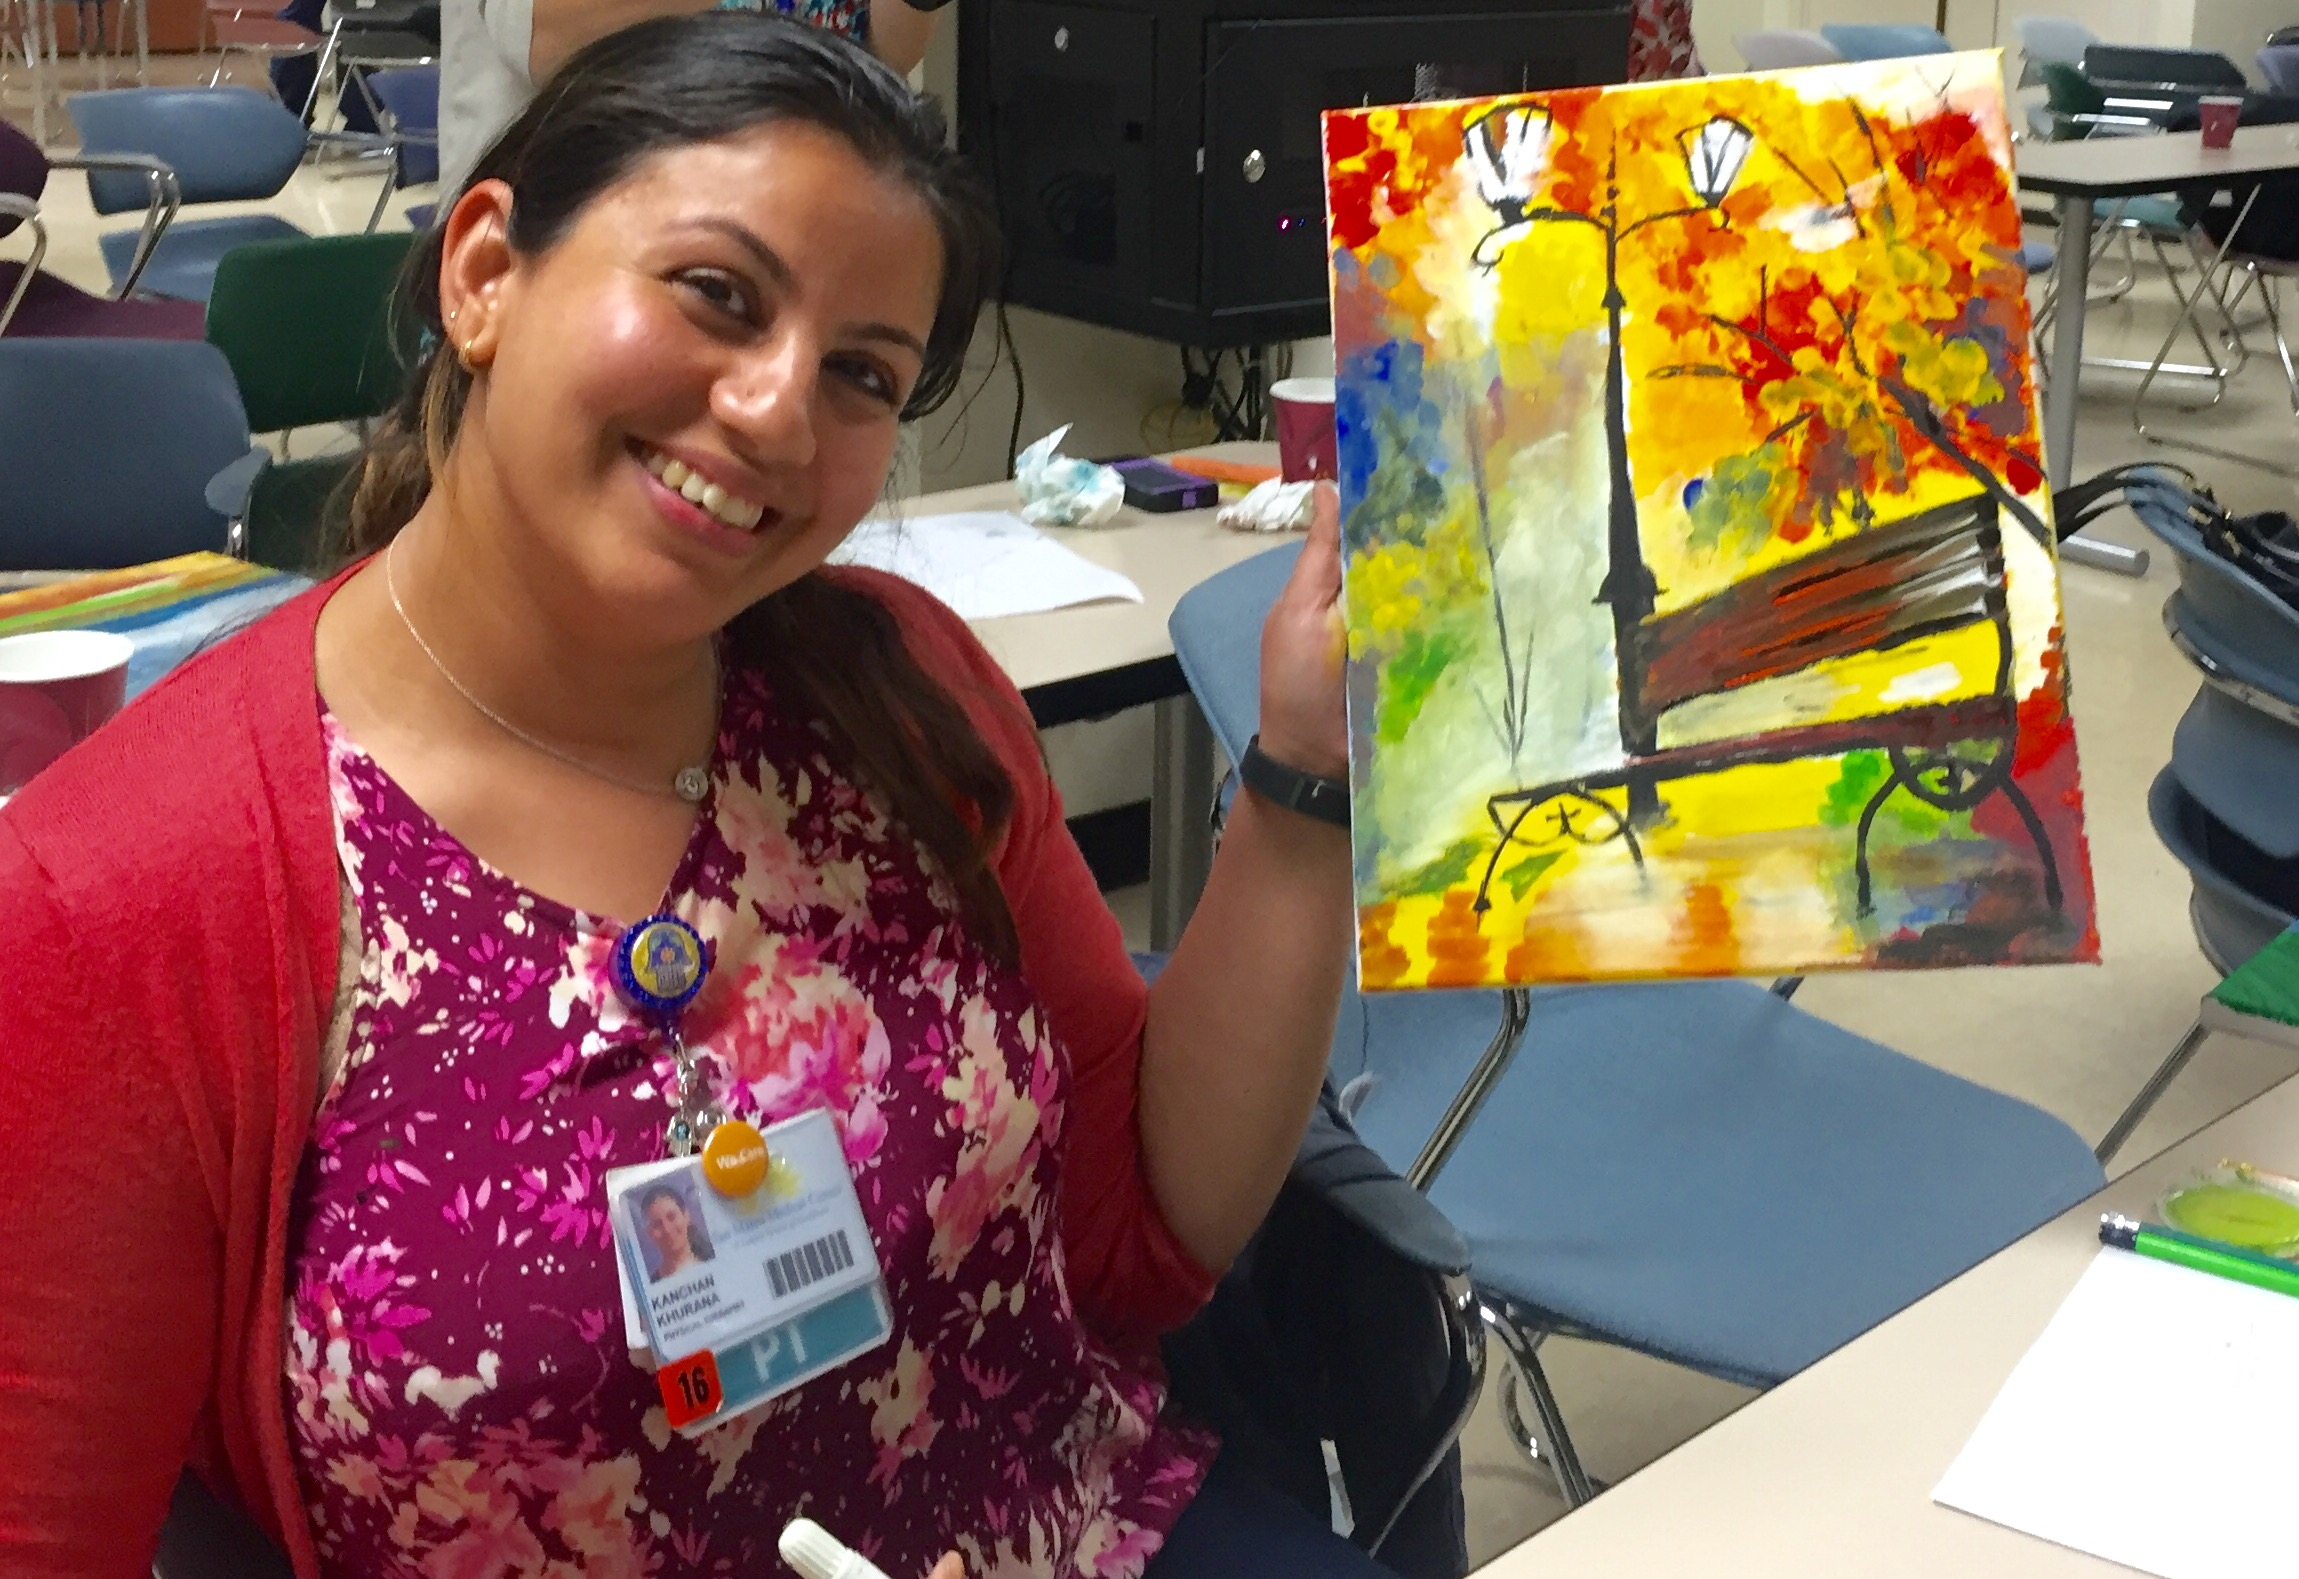 Image of a woman holding a painting.